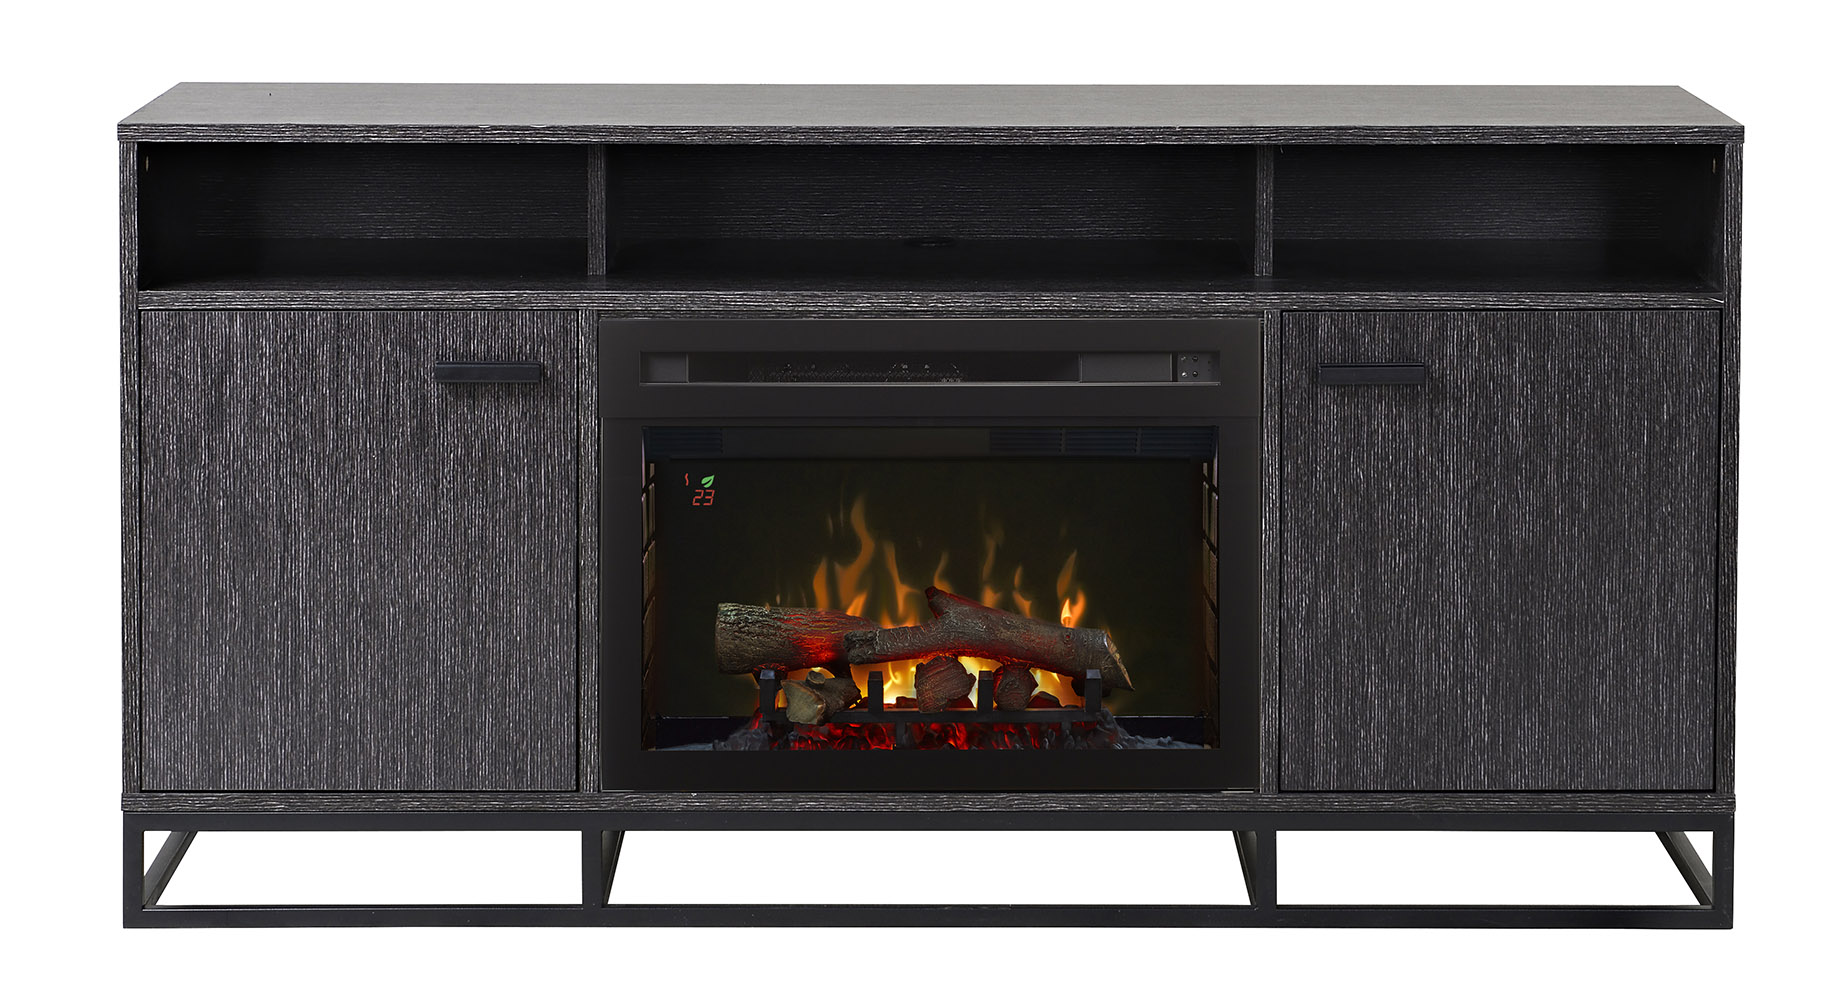 Dimplex Reily Media Console Electric Fireplace Gds25ld 1660gc